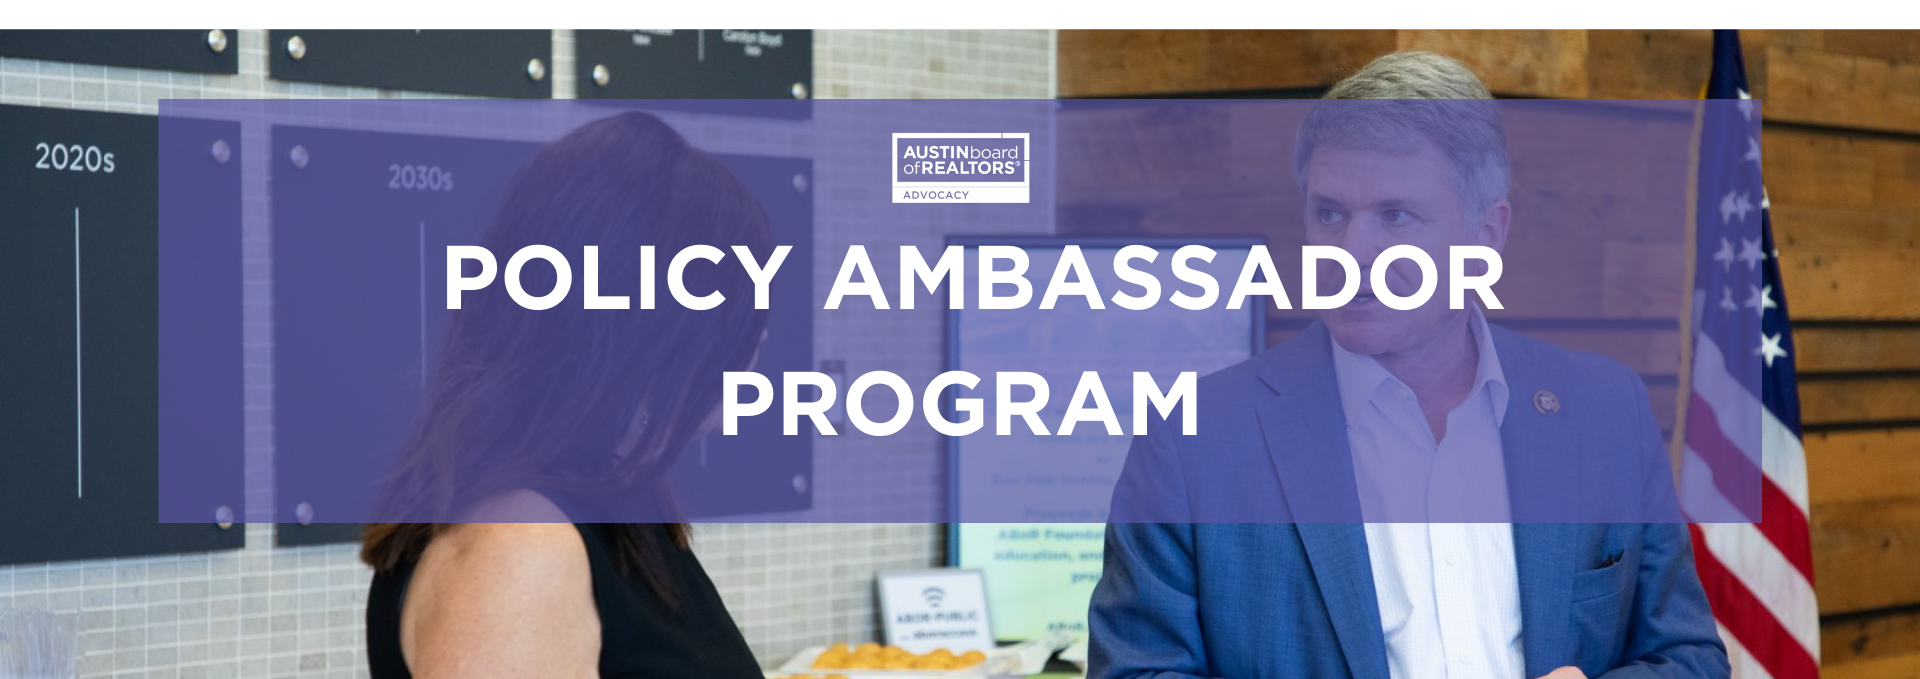 Policy Ambassadors Header Options